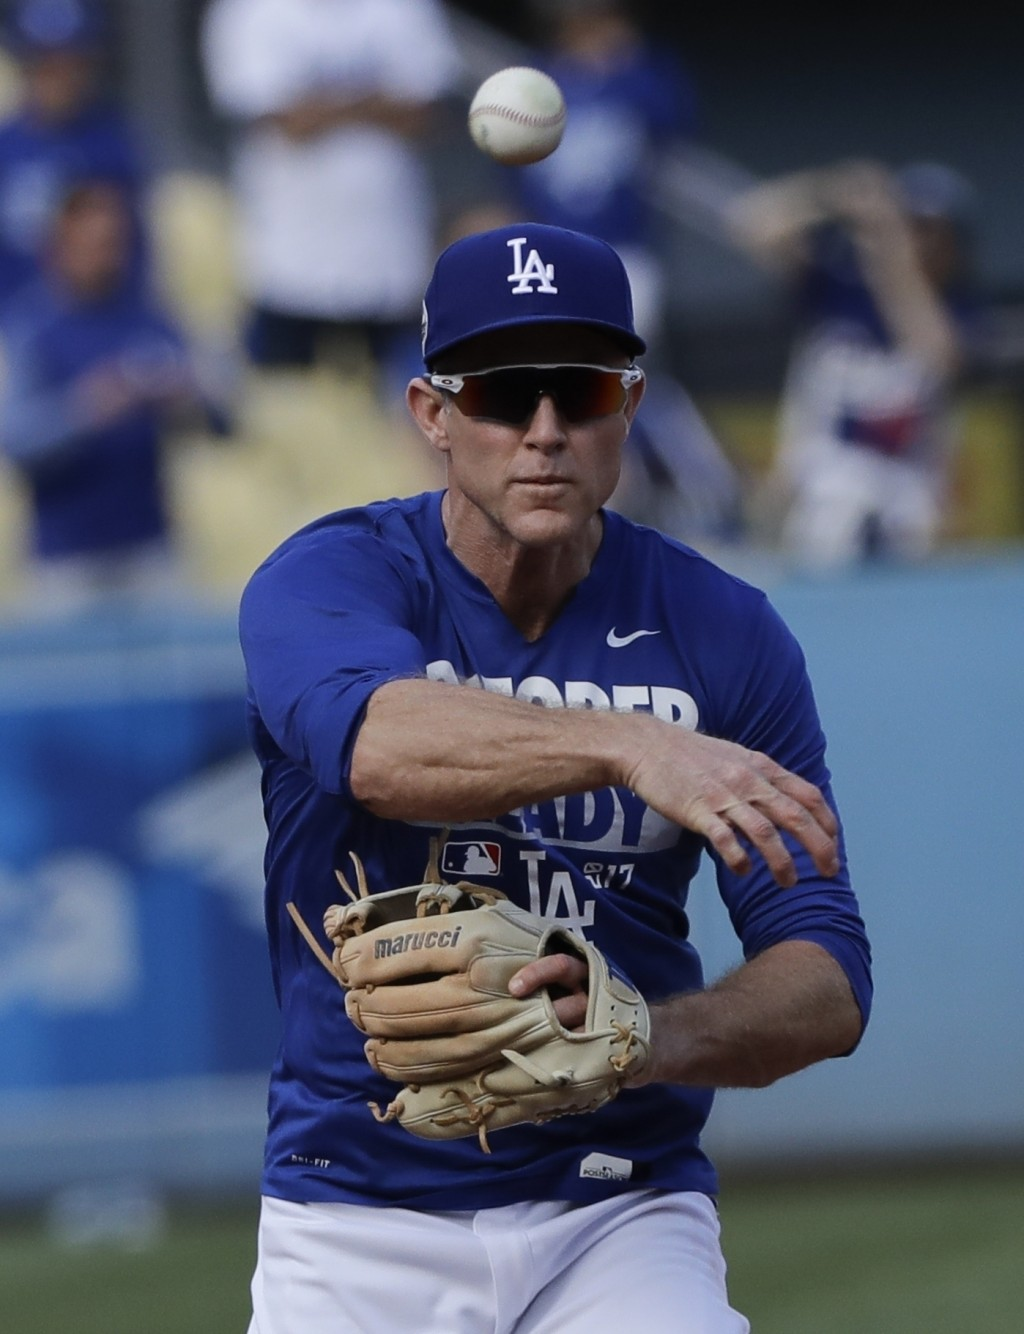 FILE - This Nov. 1, 2017 file photo shows Los Angeles Dodgers' Chase Utley warming up before Game 7 of baseball's World Series against the Houston Ast